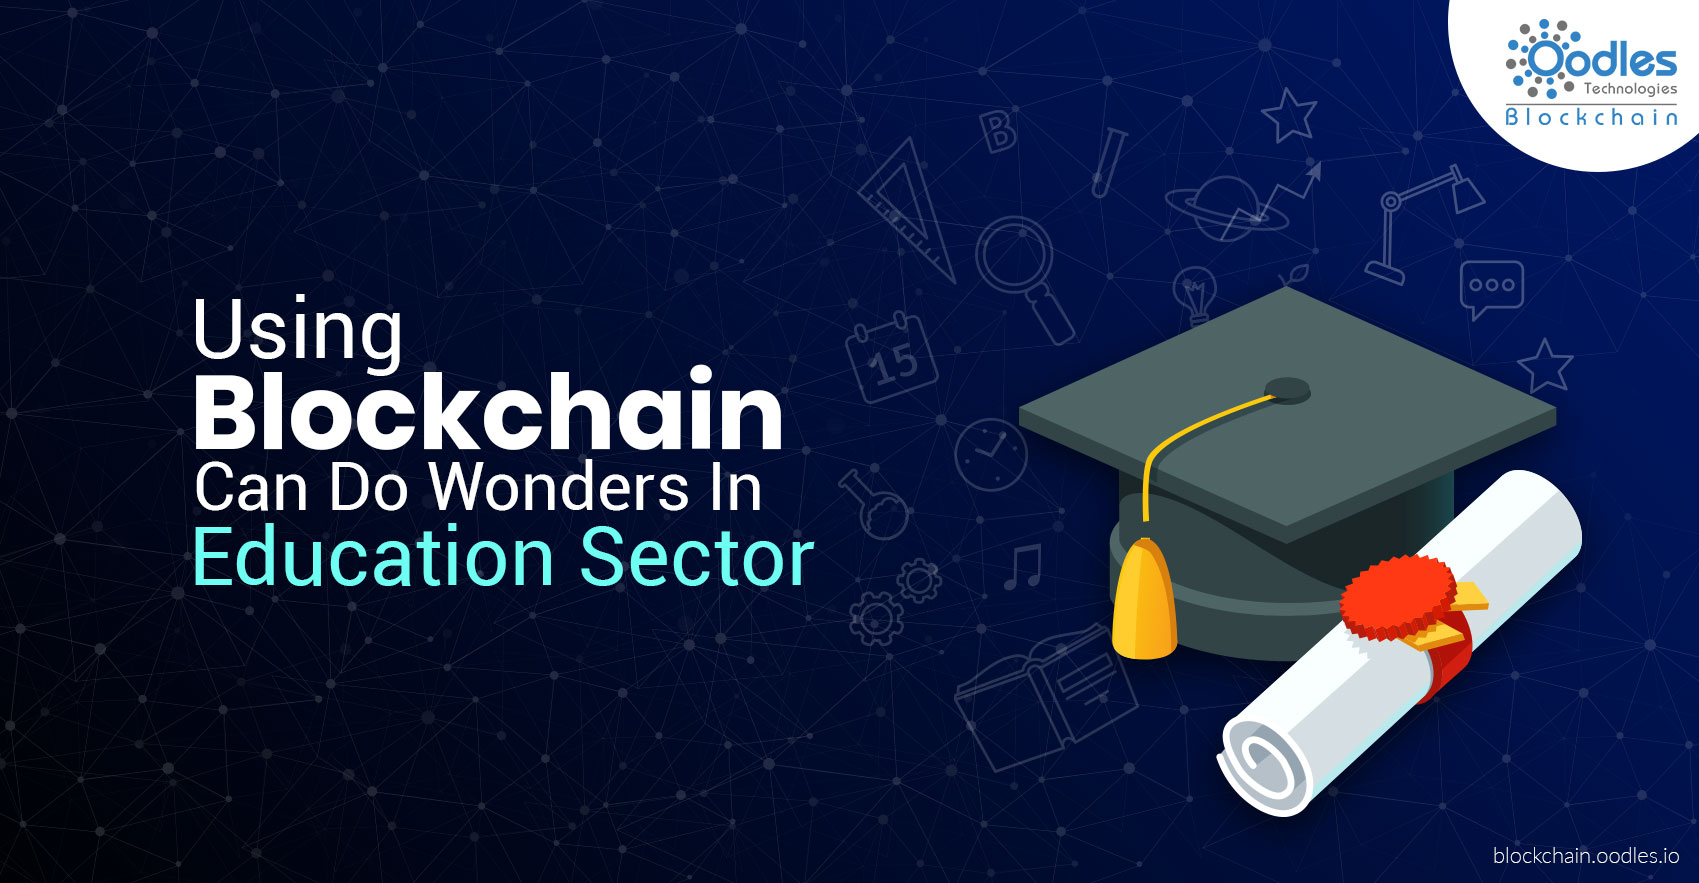 Using Blockchain Can Do Wonders In Education Sector